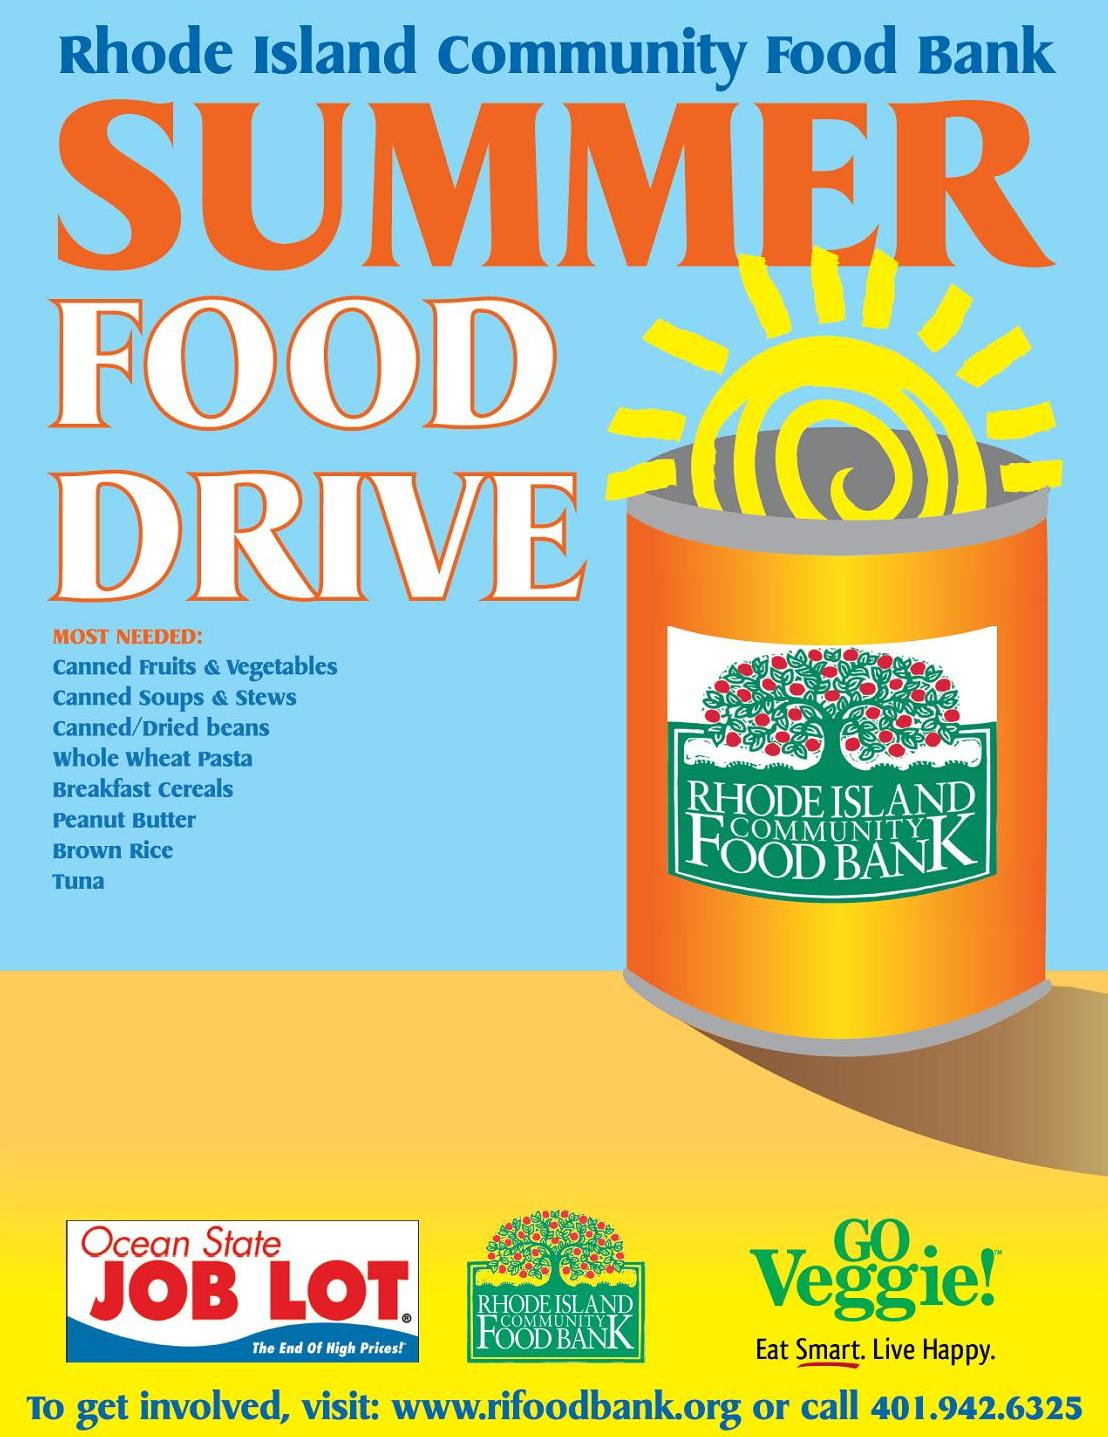 Rhode Island Community Food Bank 2013 Summer Food Drive